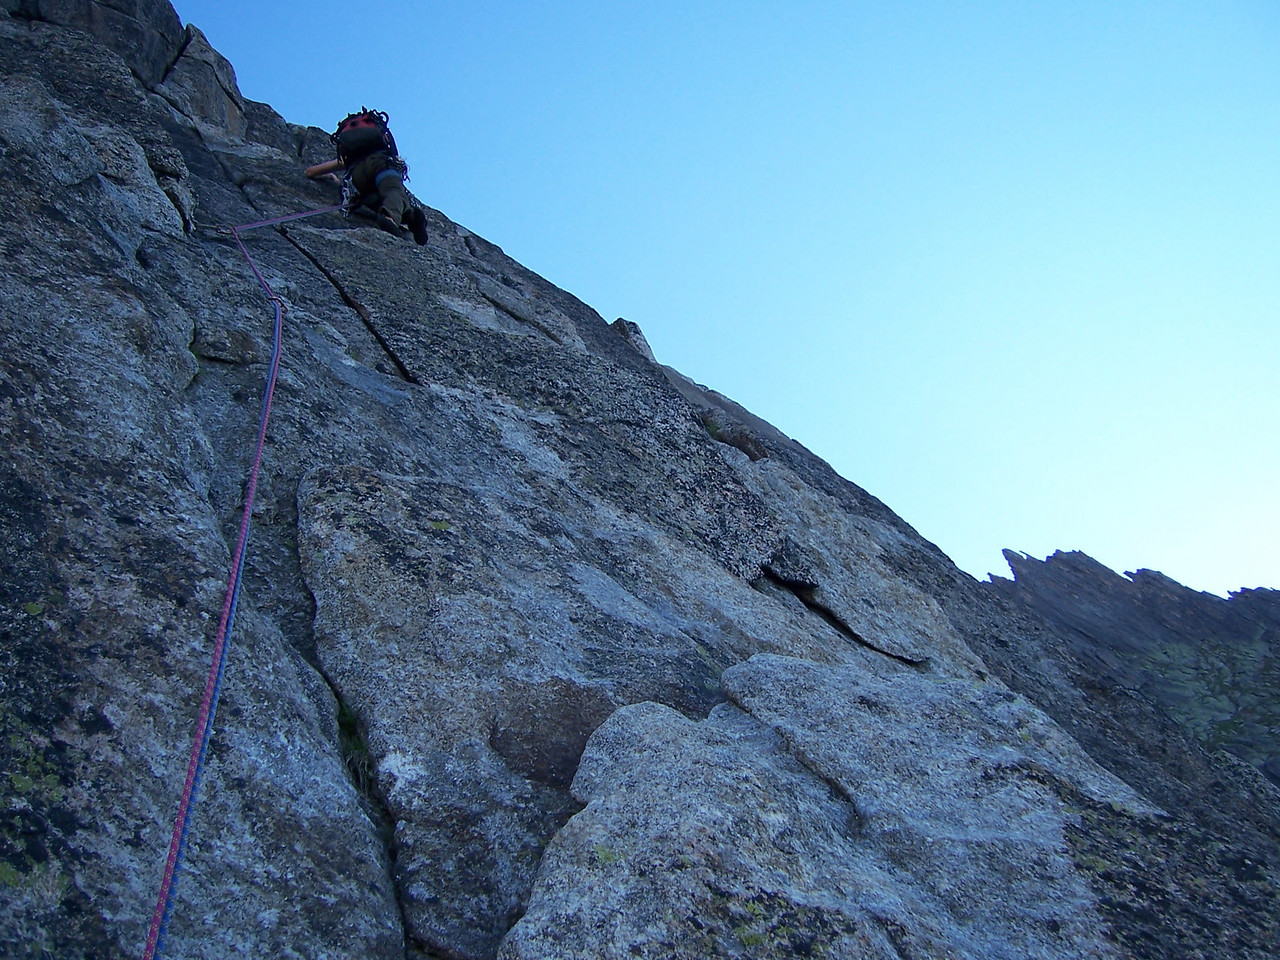 I got the first lead of the day, and one of the hardest ones.  A 6b (10d) mixed route is quite the warmup when your legs are still rubber from the night before and it's 6:30 in the a.m.!  Here Dan leads another pitch higher up on tower 1.